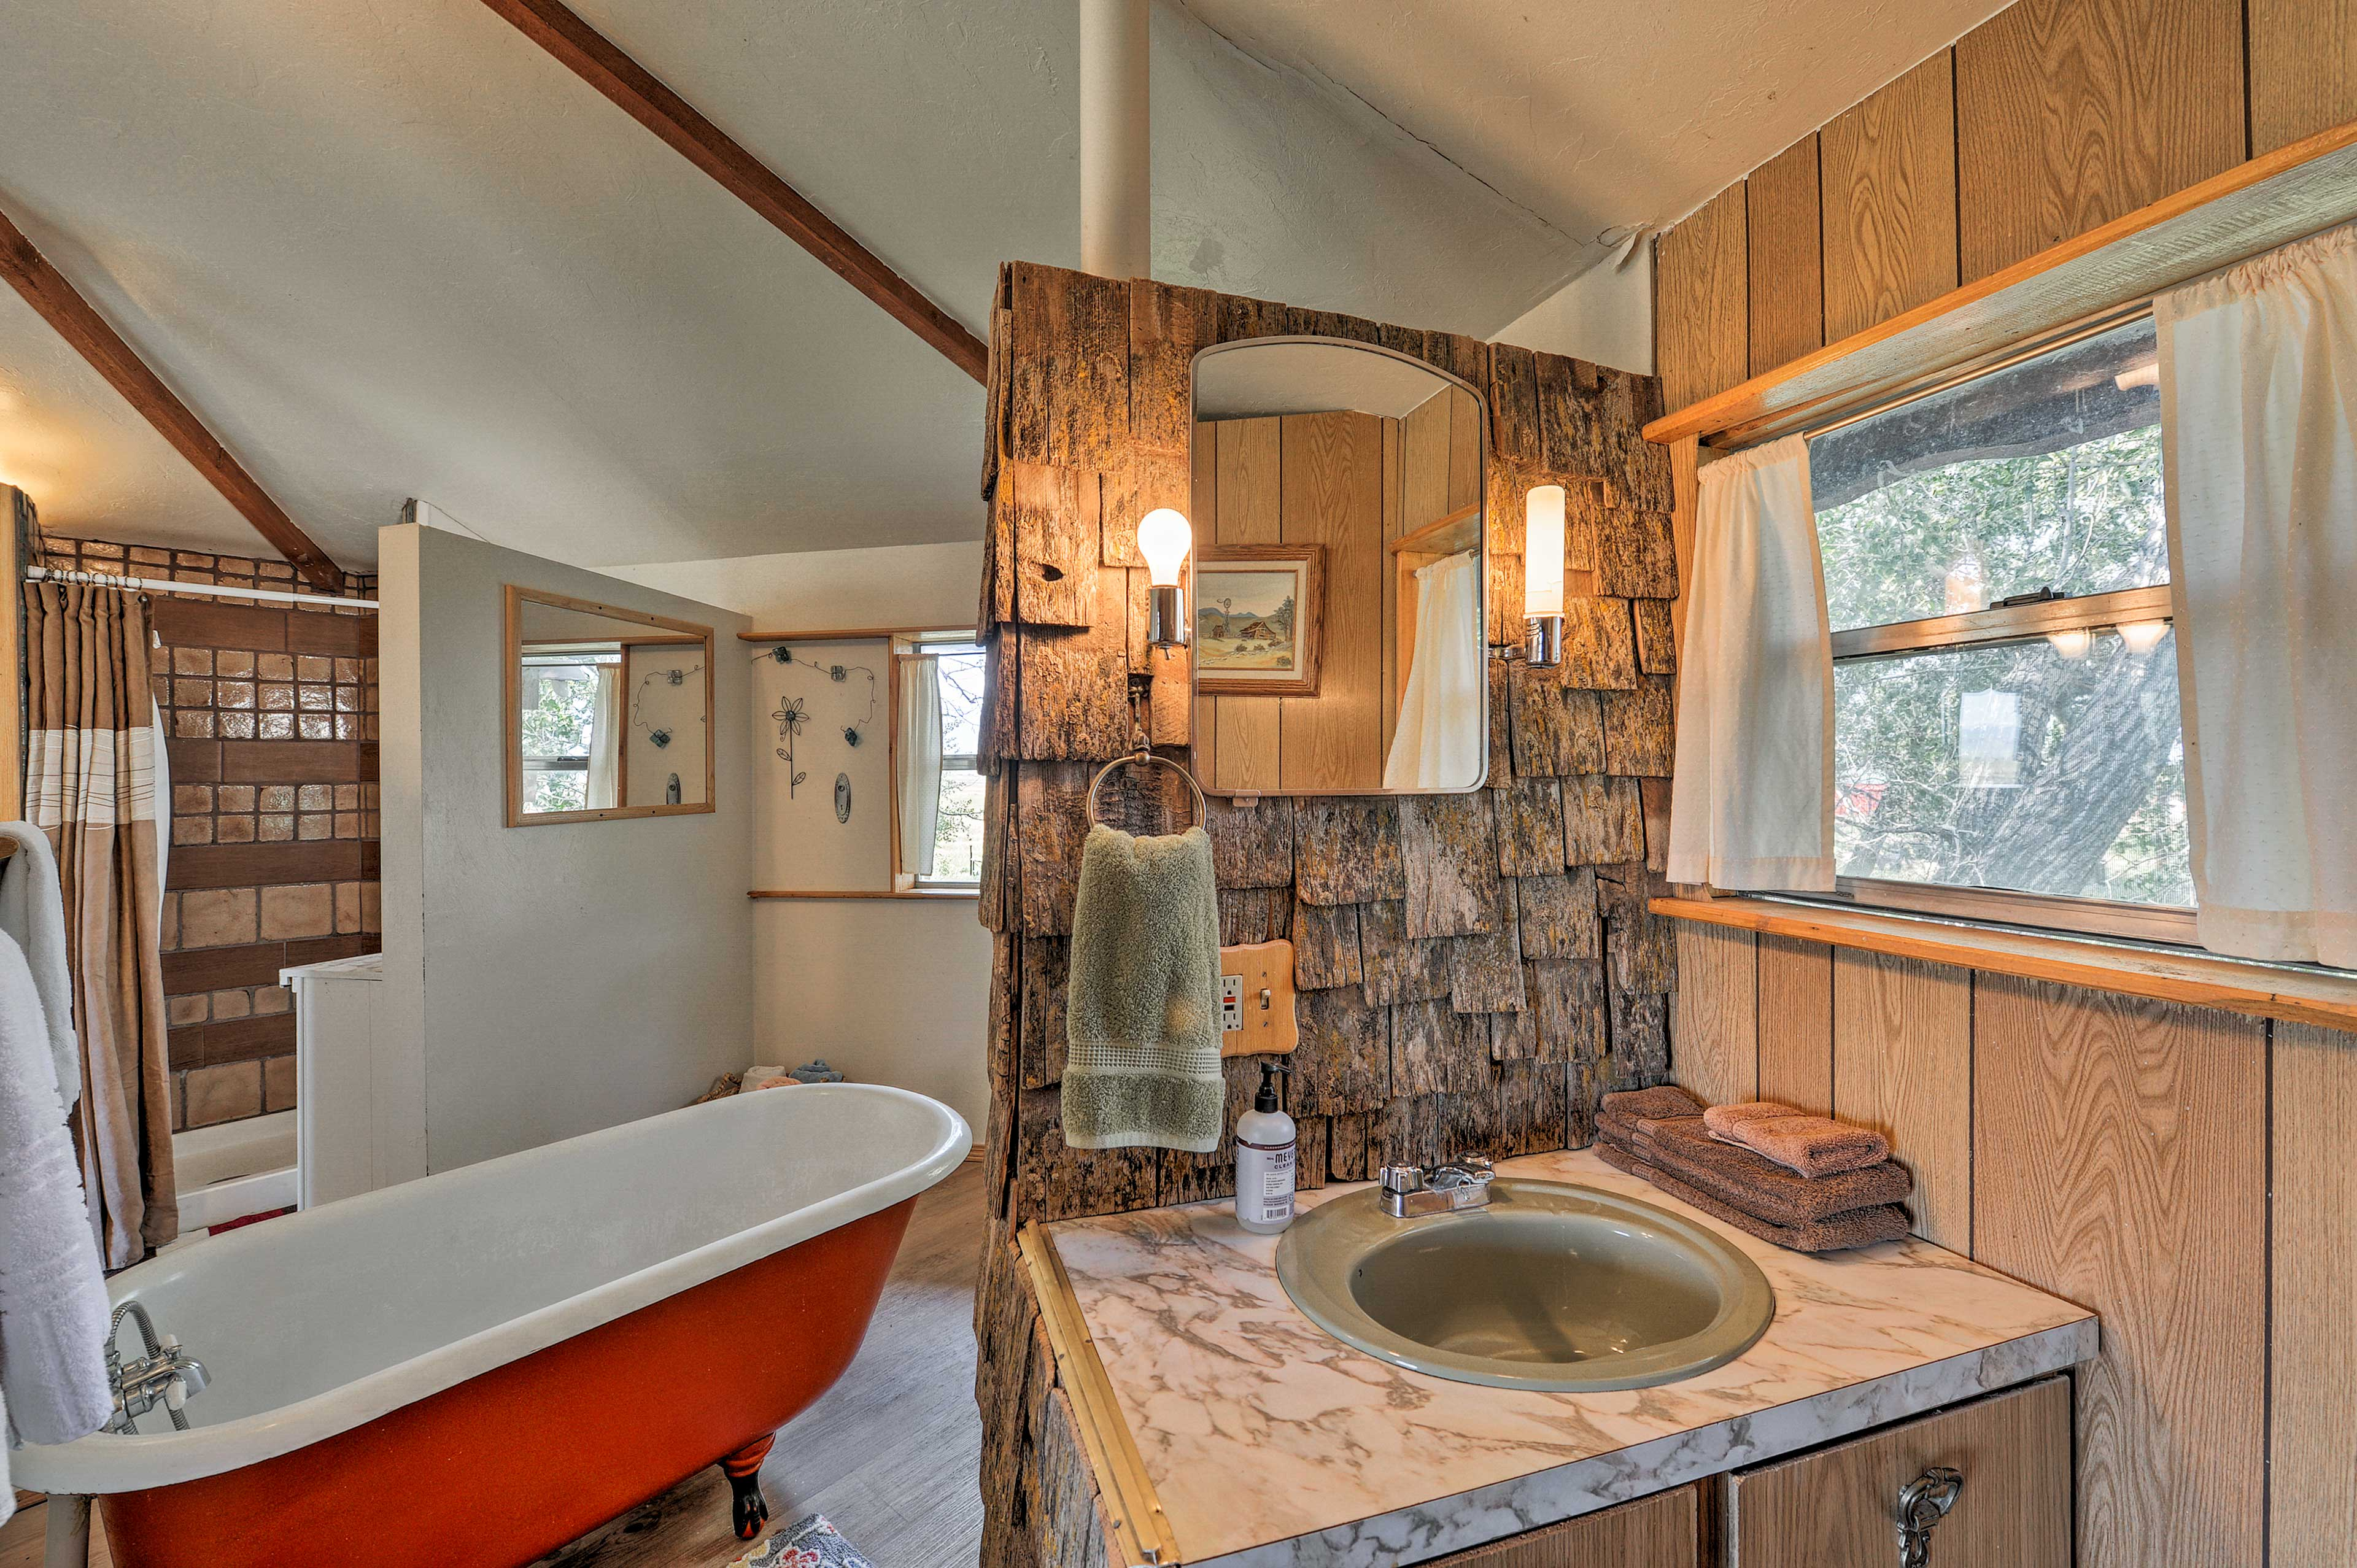 Prepare for the day in the rustic bathroom.